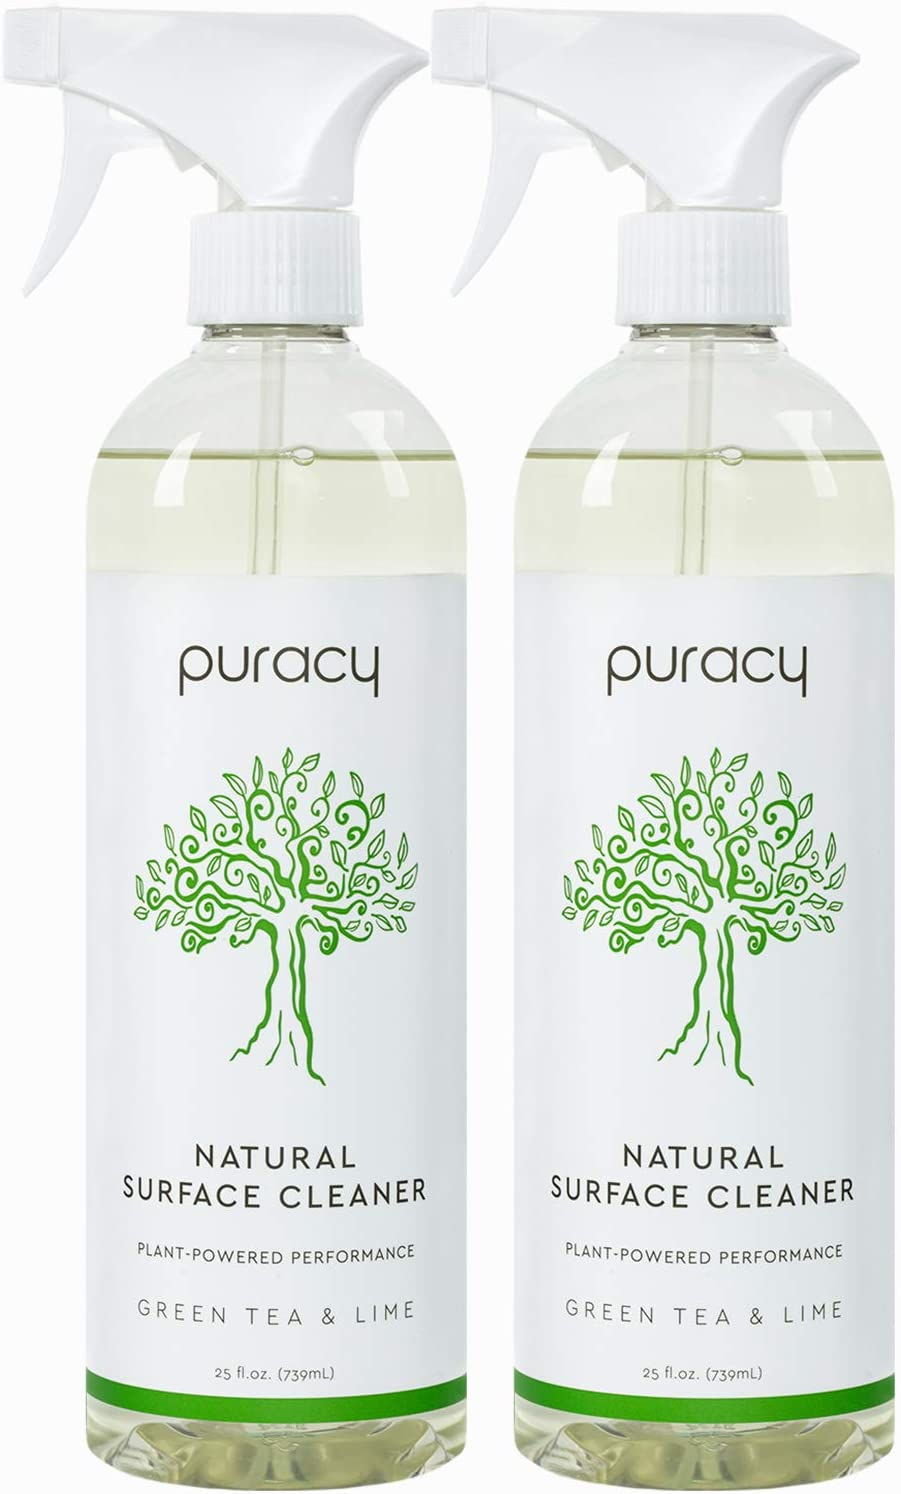 Puracy All Purpose Cleaner, StreakFree, Food Safe Natural Household MultiSurface Spray, Green Tea & Lime, Green Tea & Lime, 25 Fl Oz (Pack of 2), Green Tea & Lime, 50 Fl Oz